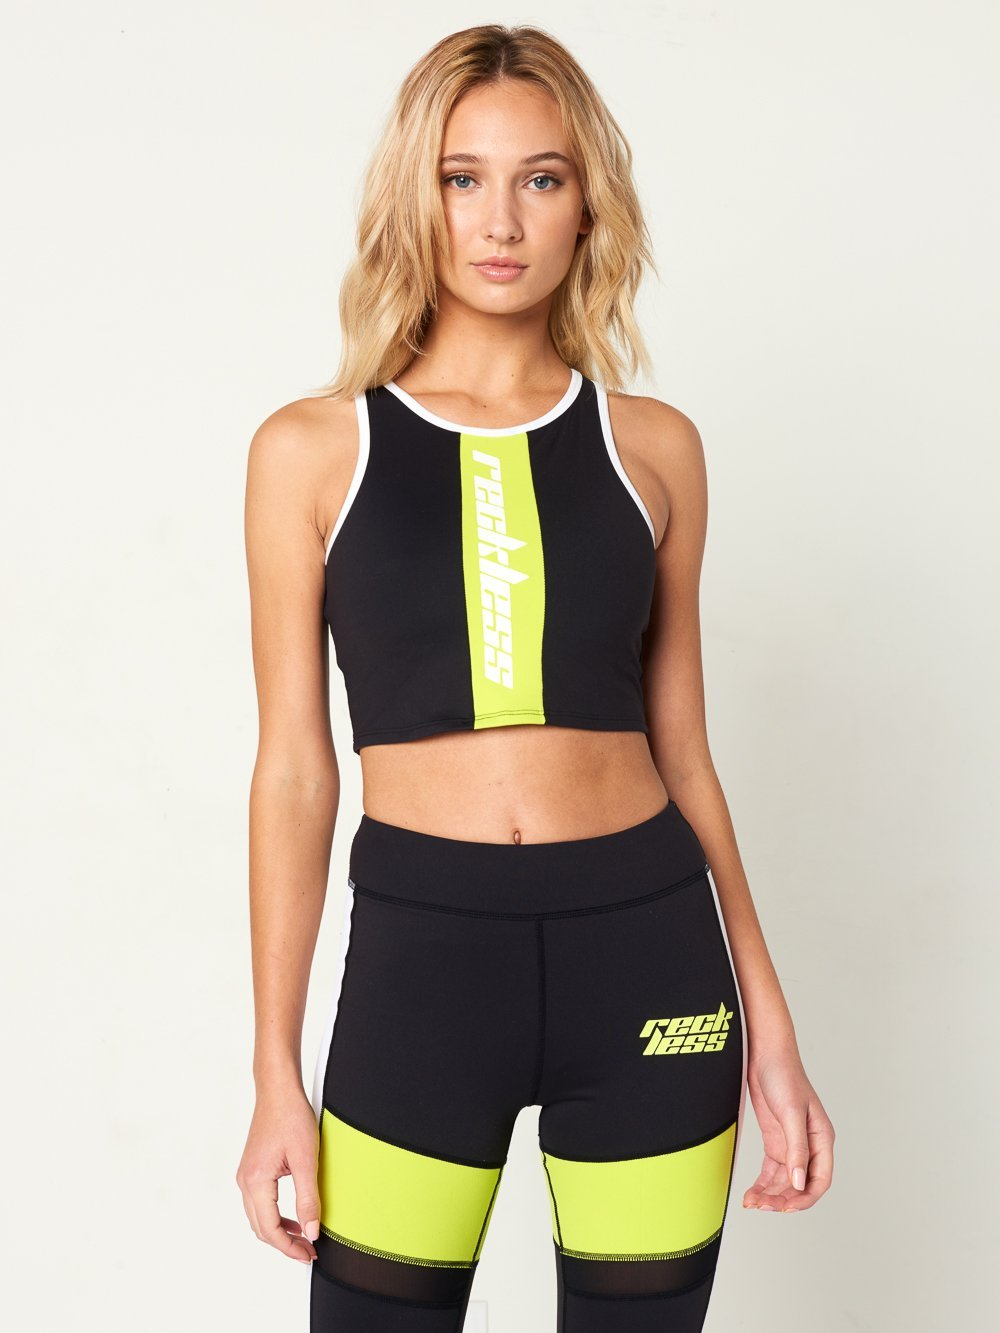 Reckless Girls Womens - Activewear - Tops Paisley Sports Bra- Black